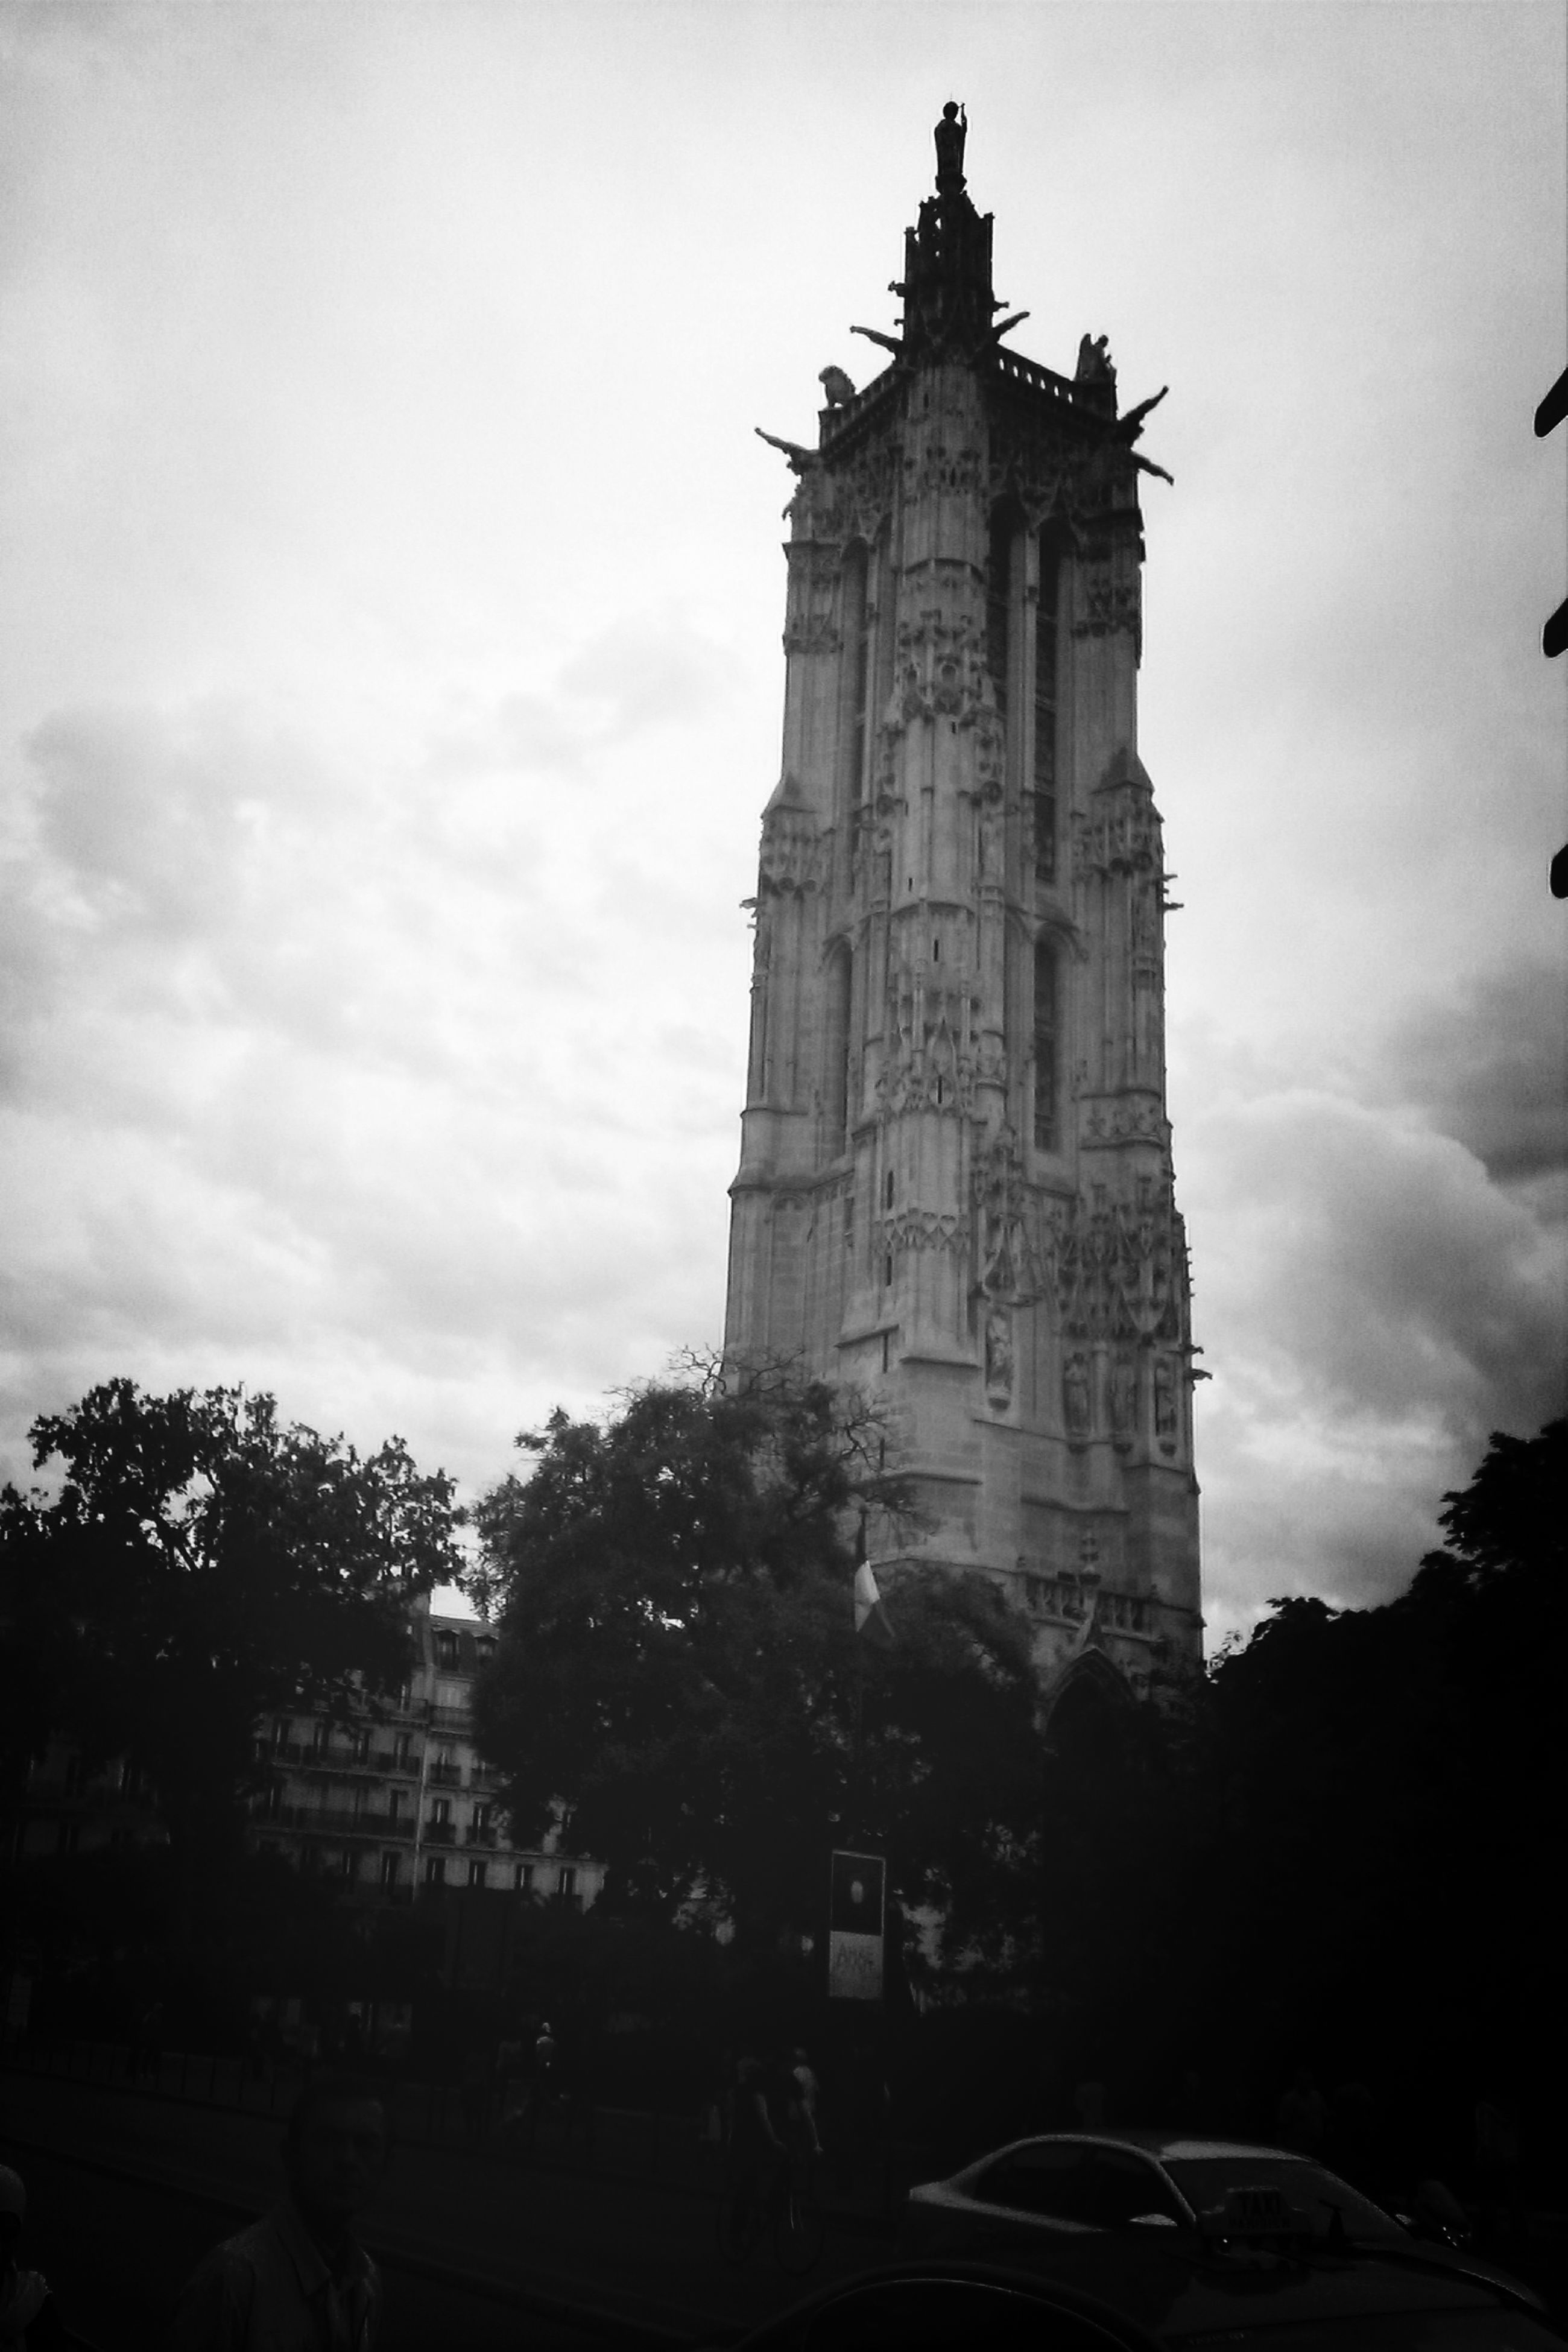 architecture, building exterior, built structure, sky, religion, place of worship, history, church, low angle view, spirituality, famous place, tree, cloud - sky, travel destinations, tower, travel, clock tower, cathedral